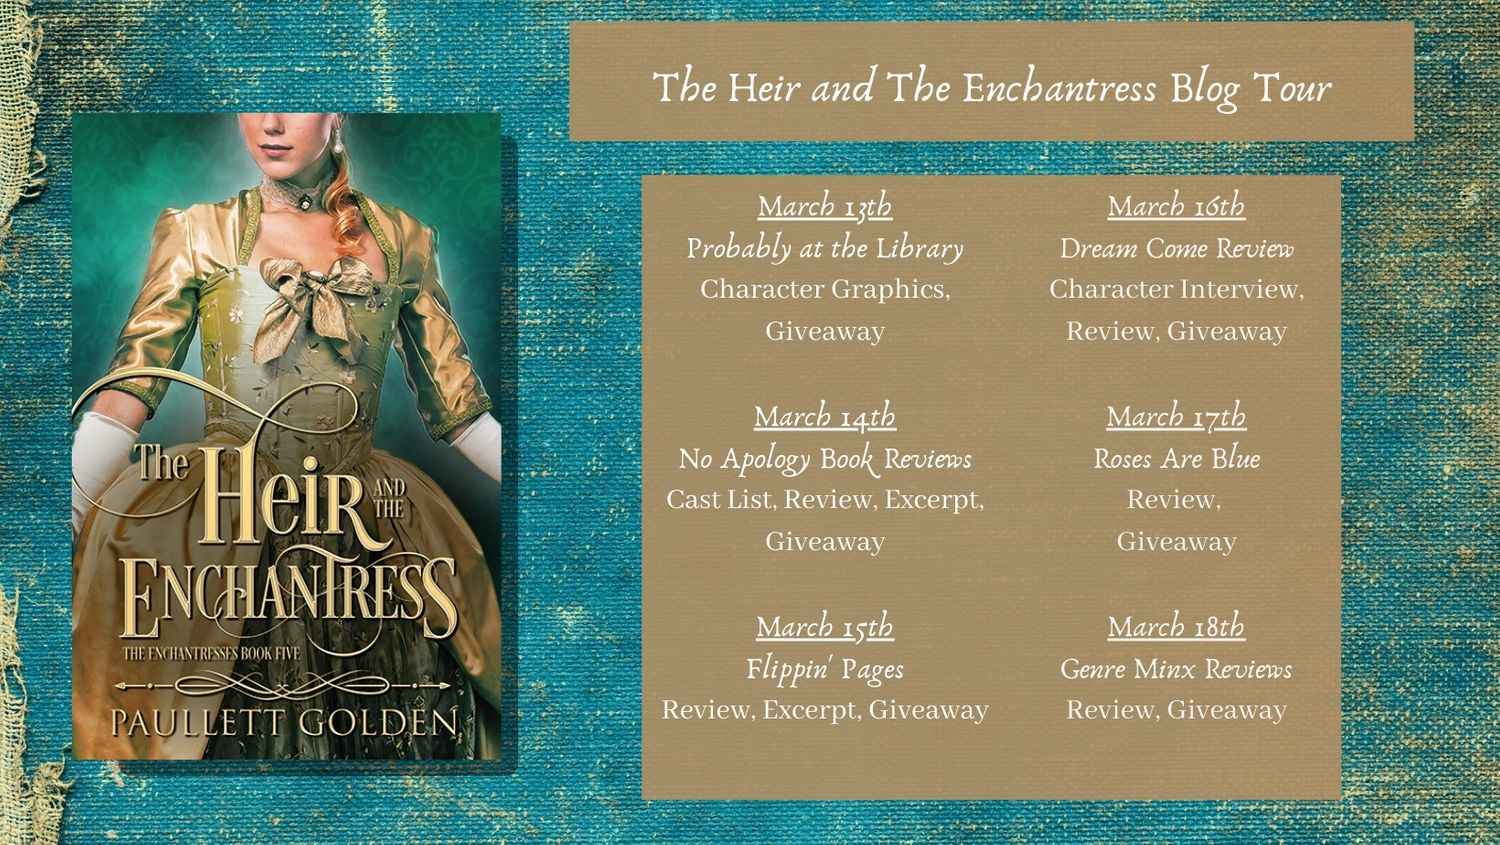 Blog Tour Details - The Heir and the Enchantress